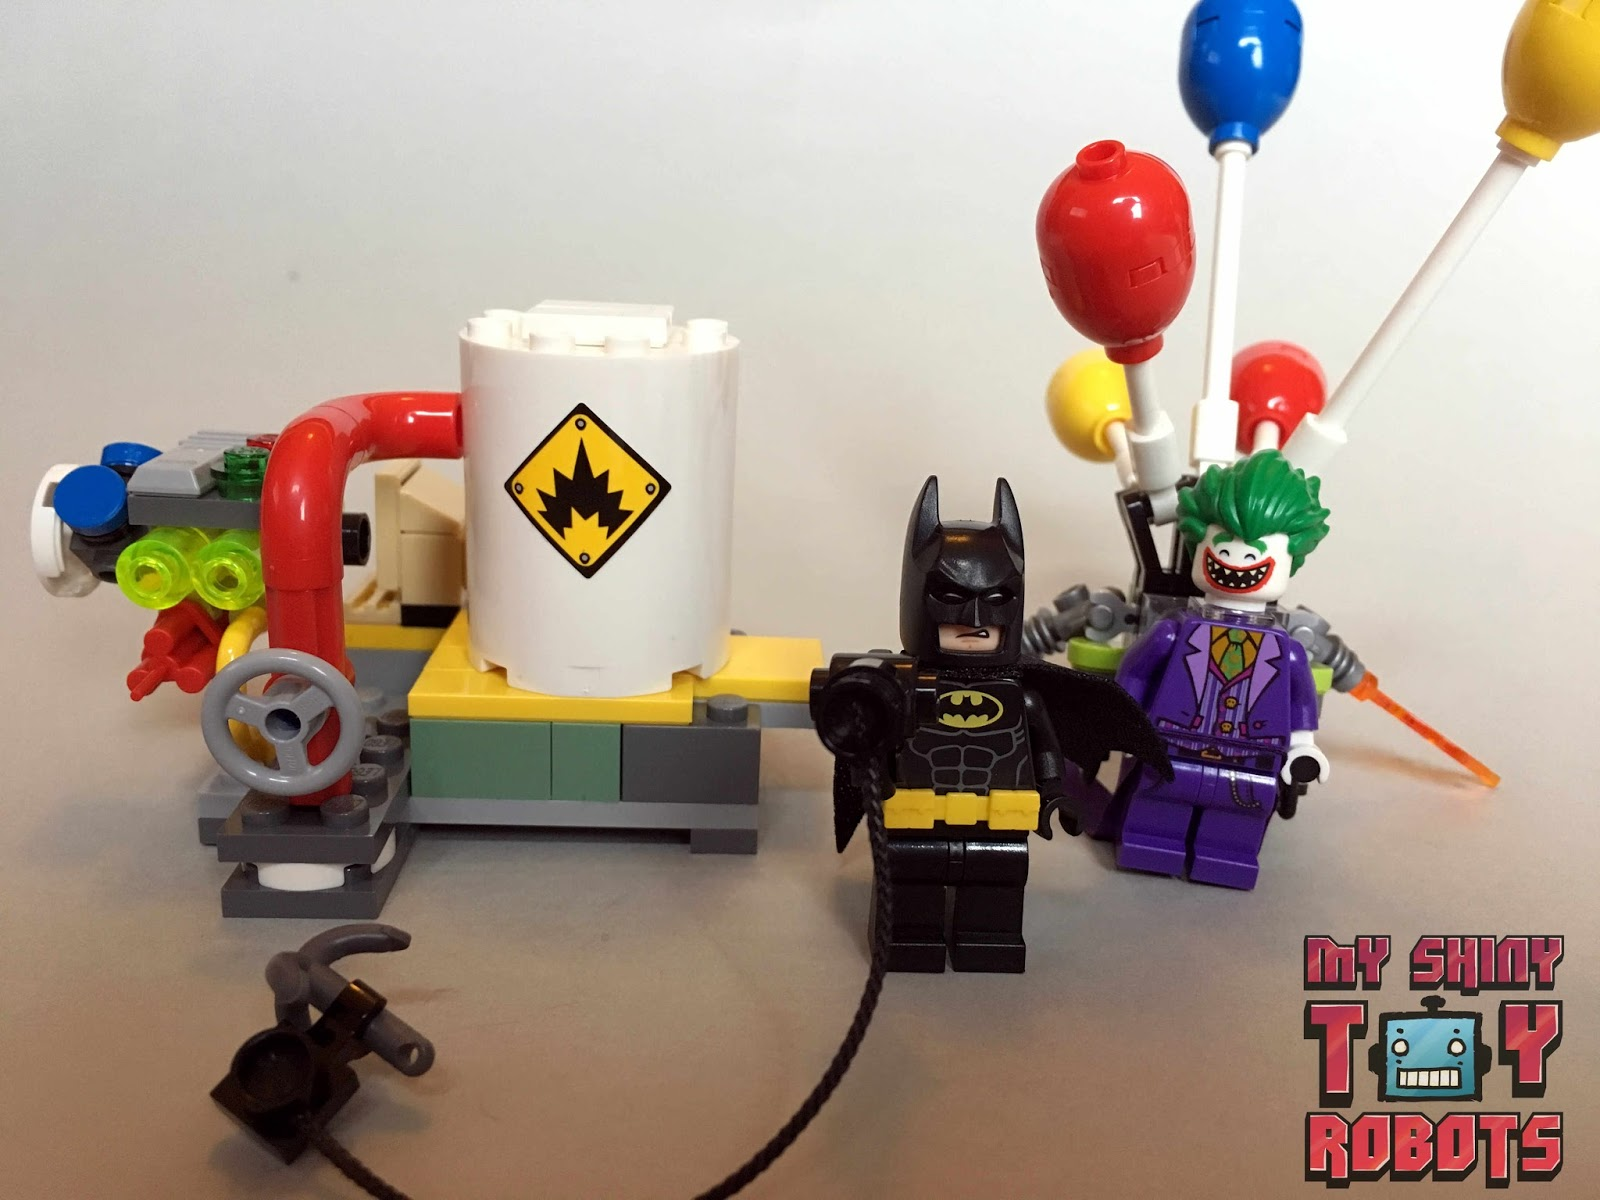 My Shiny Toy Robots Toybox Review The Lego Batman Movie Set 70900 The Joker Balloon Escape